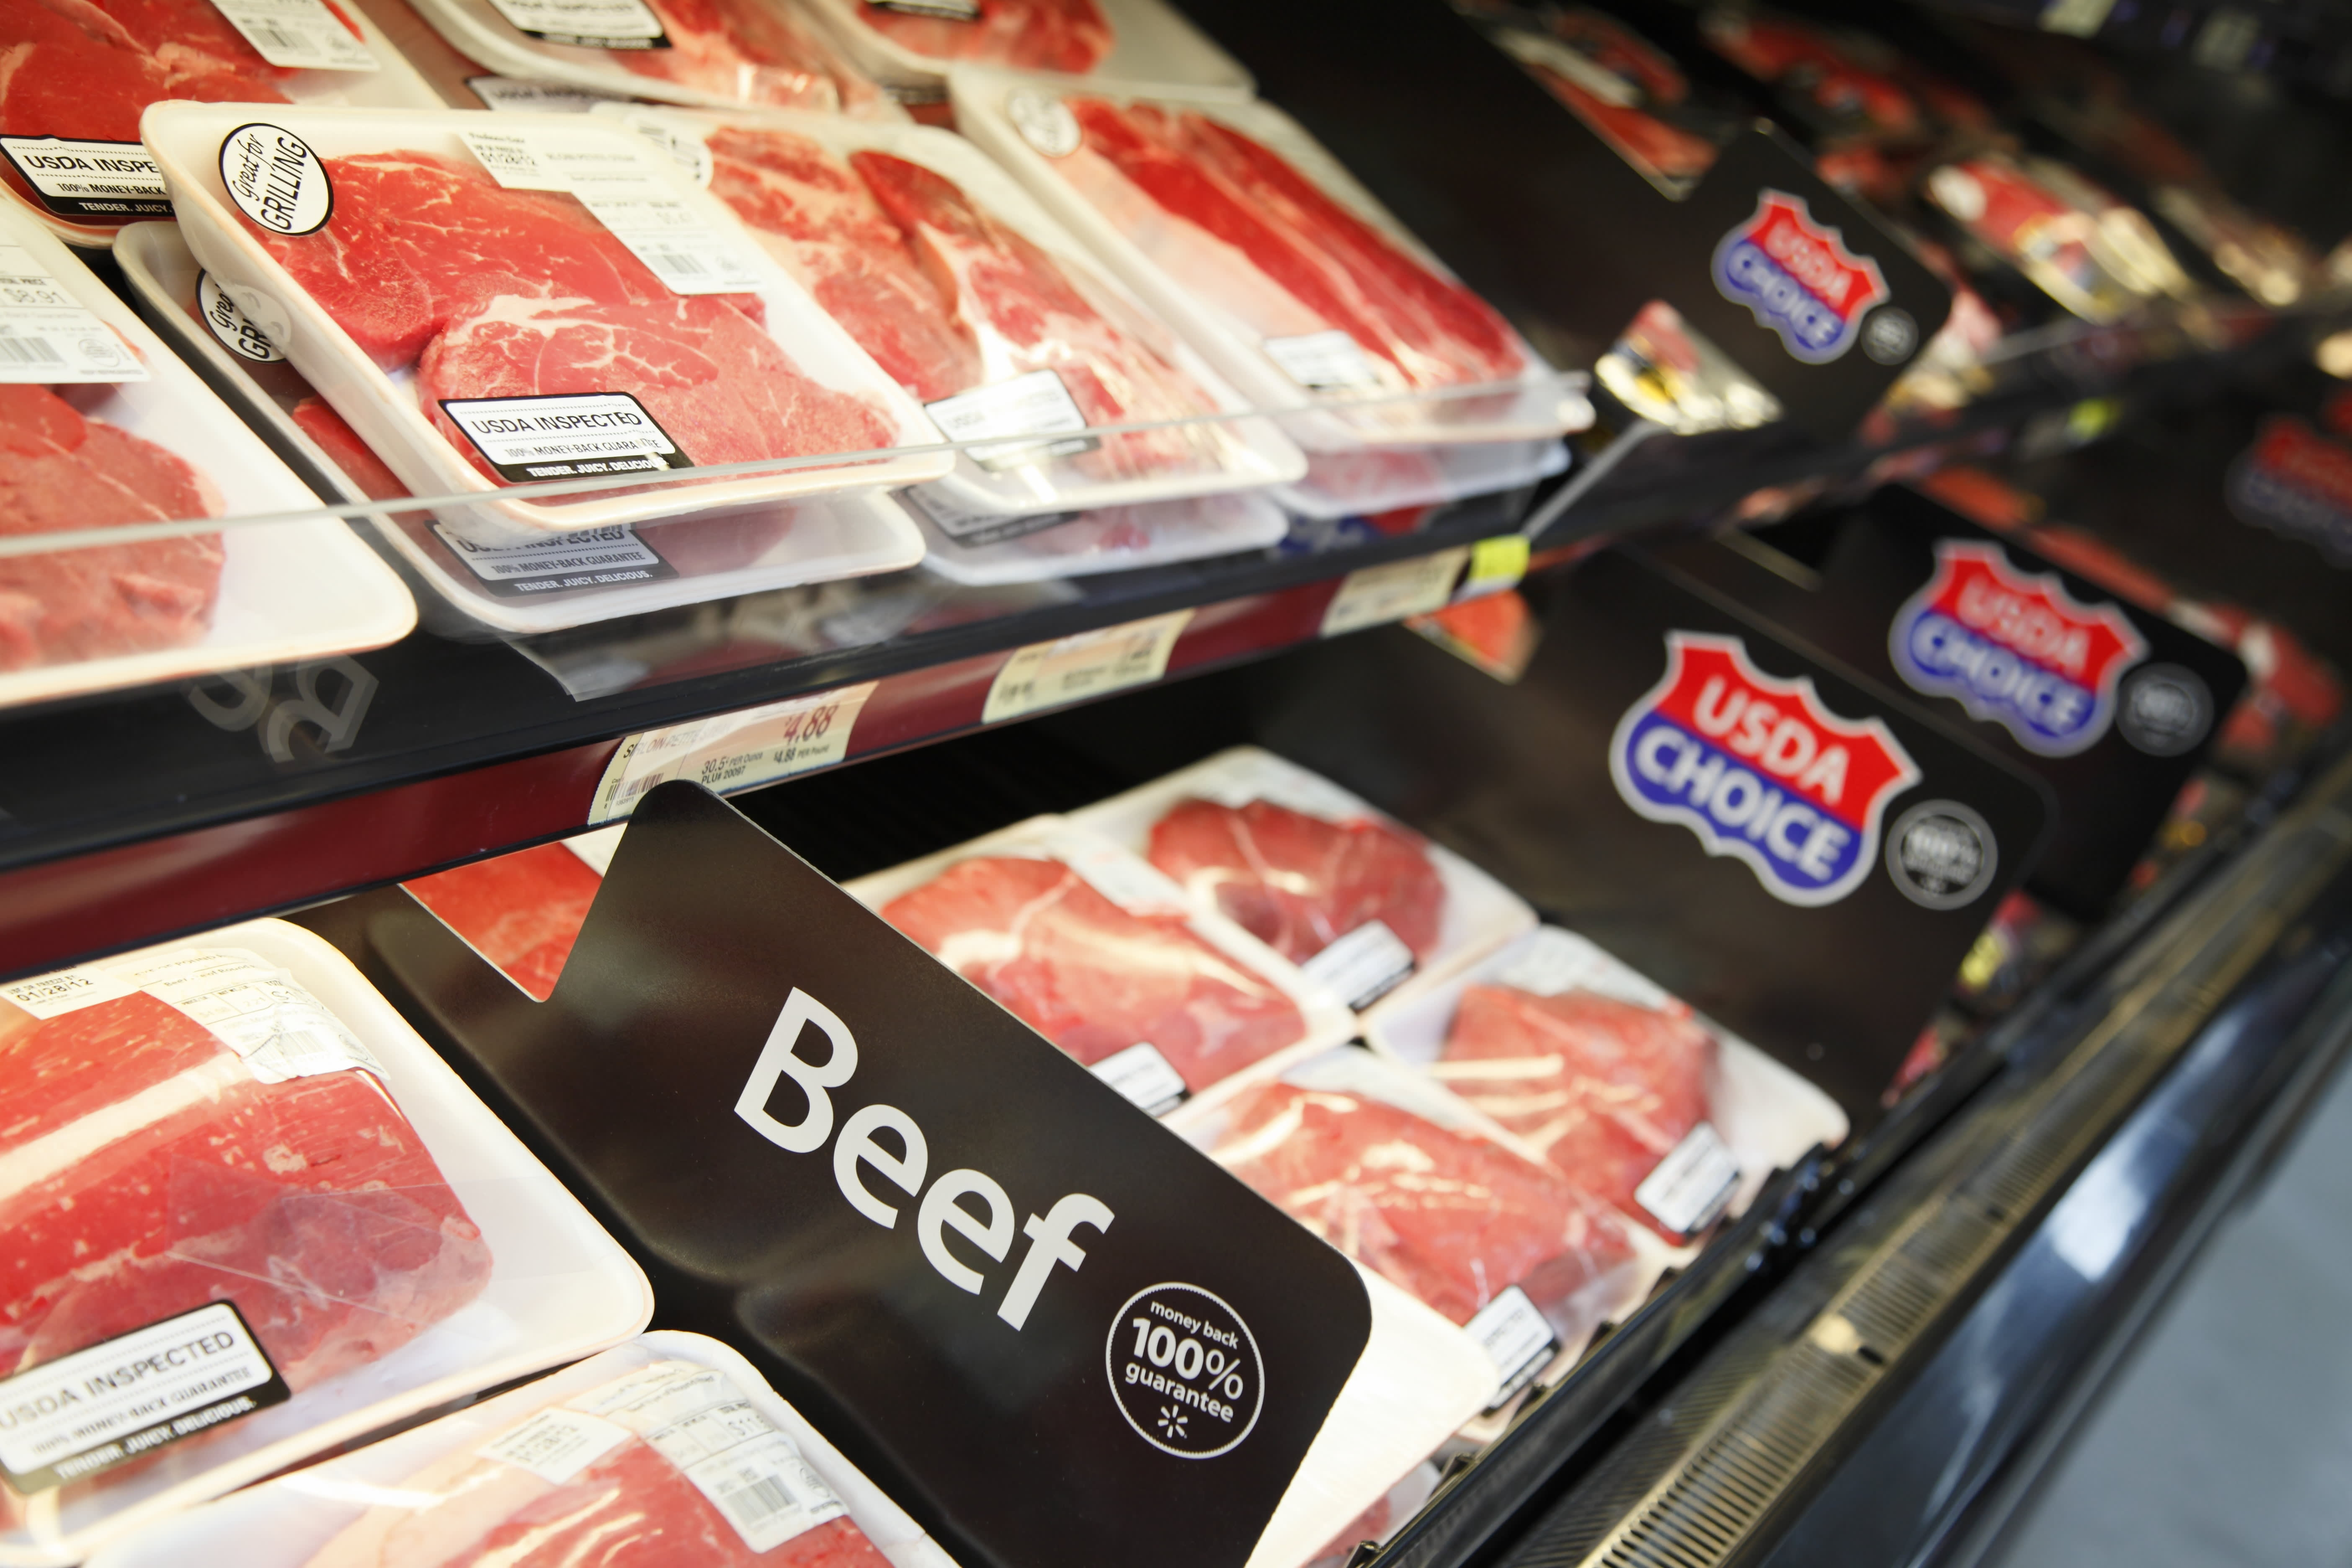 Walmart is getting into the Angus beef business